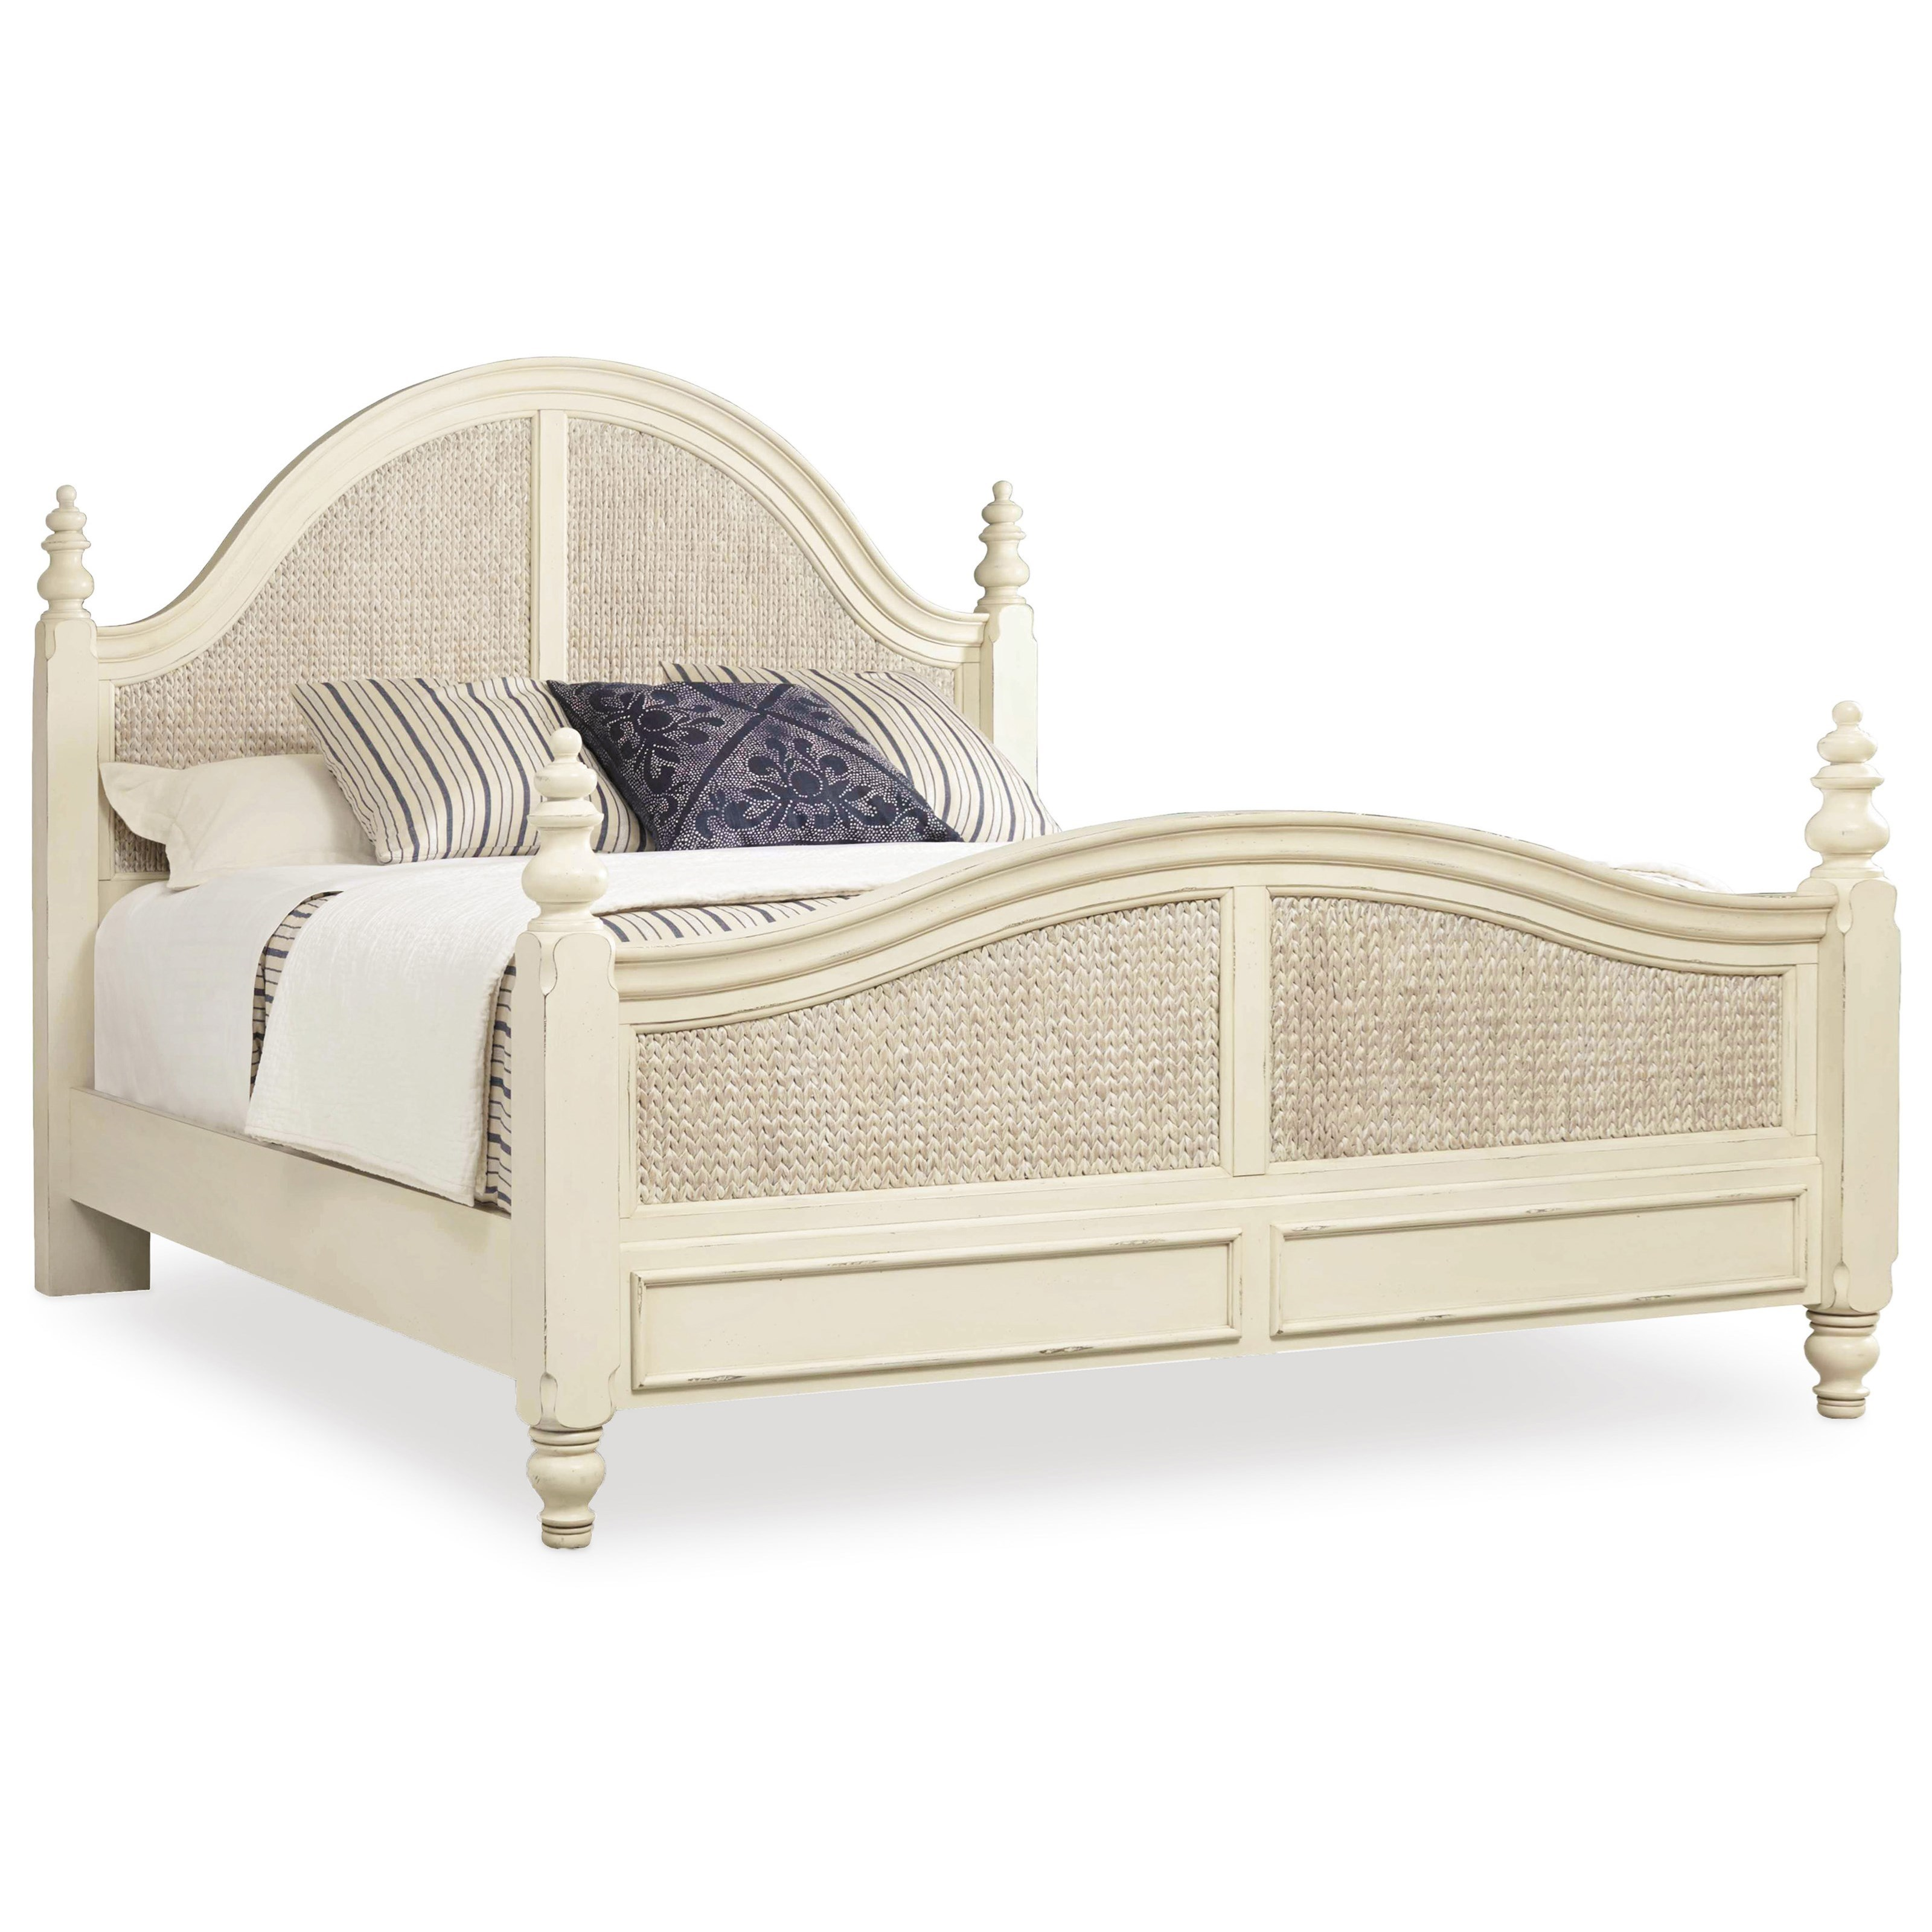 Hooker Furniture Sandcastle King Woven Panel Bed - Item Number: 5900-90266-WH